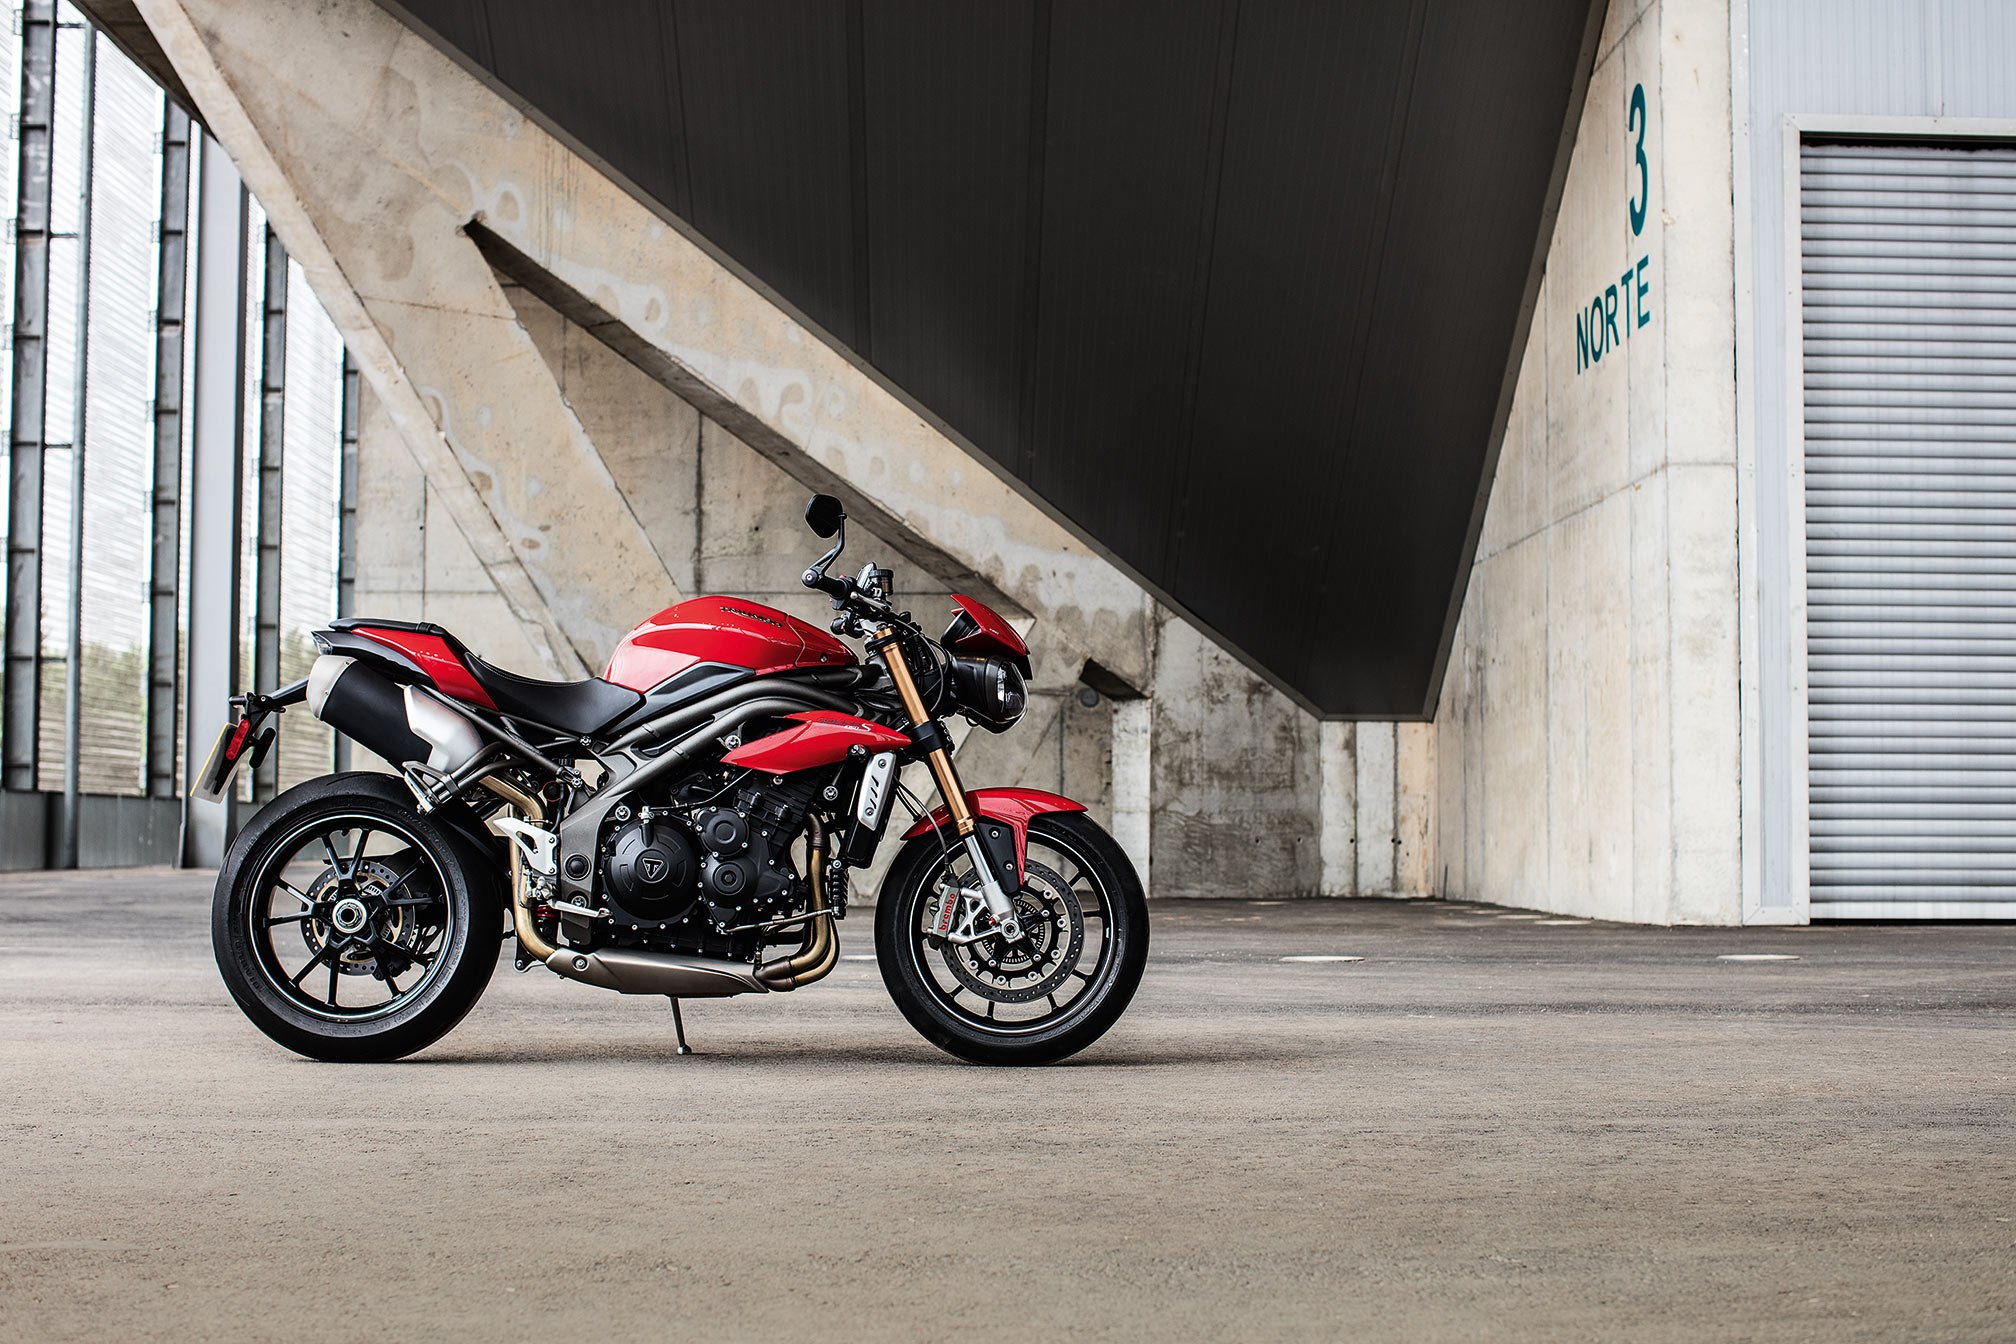 2016 triumph speed triple s bike motorbike motorcycle wallpaper